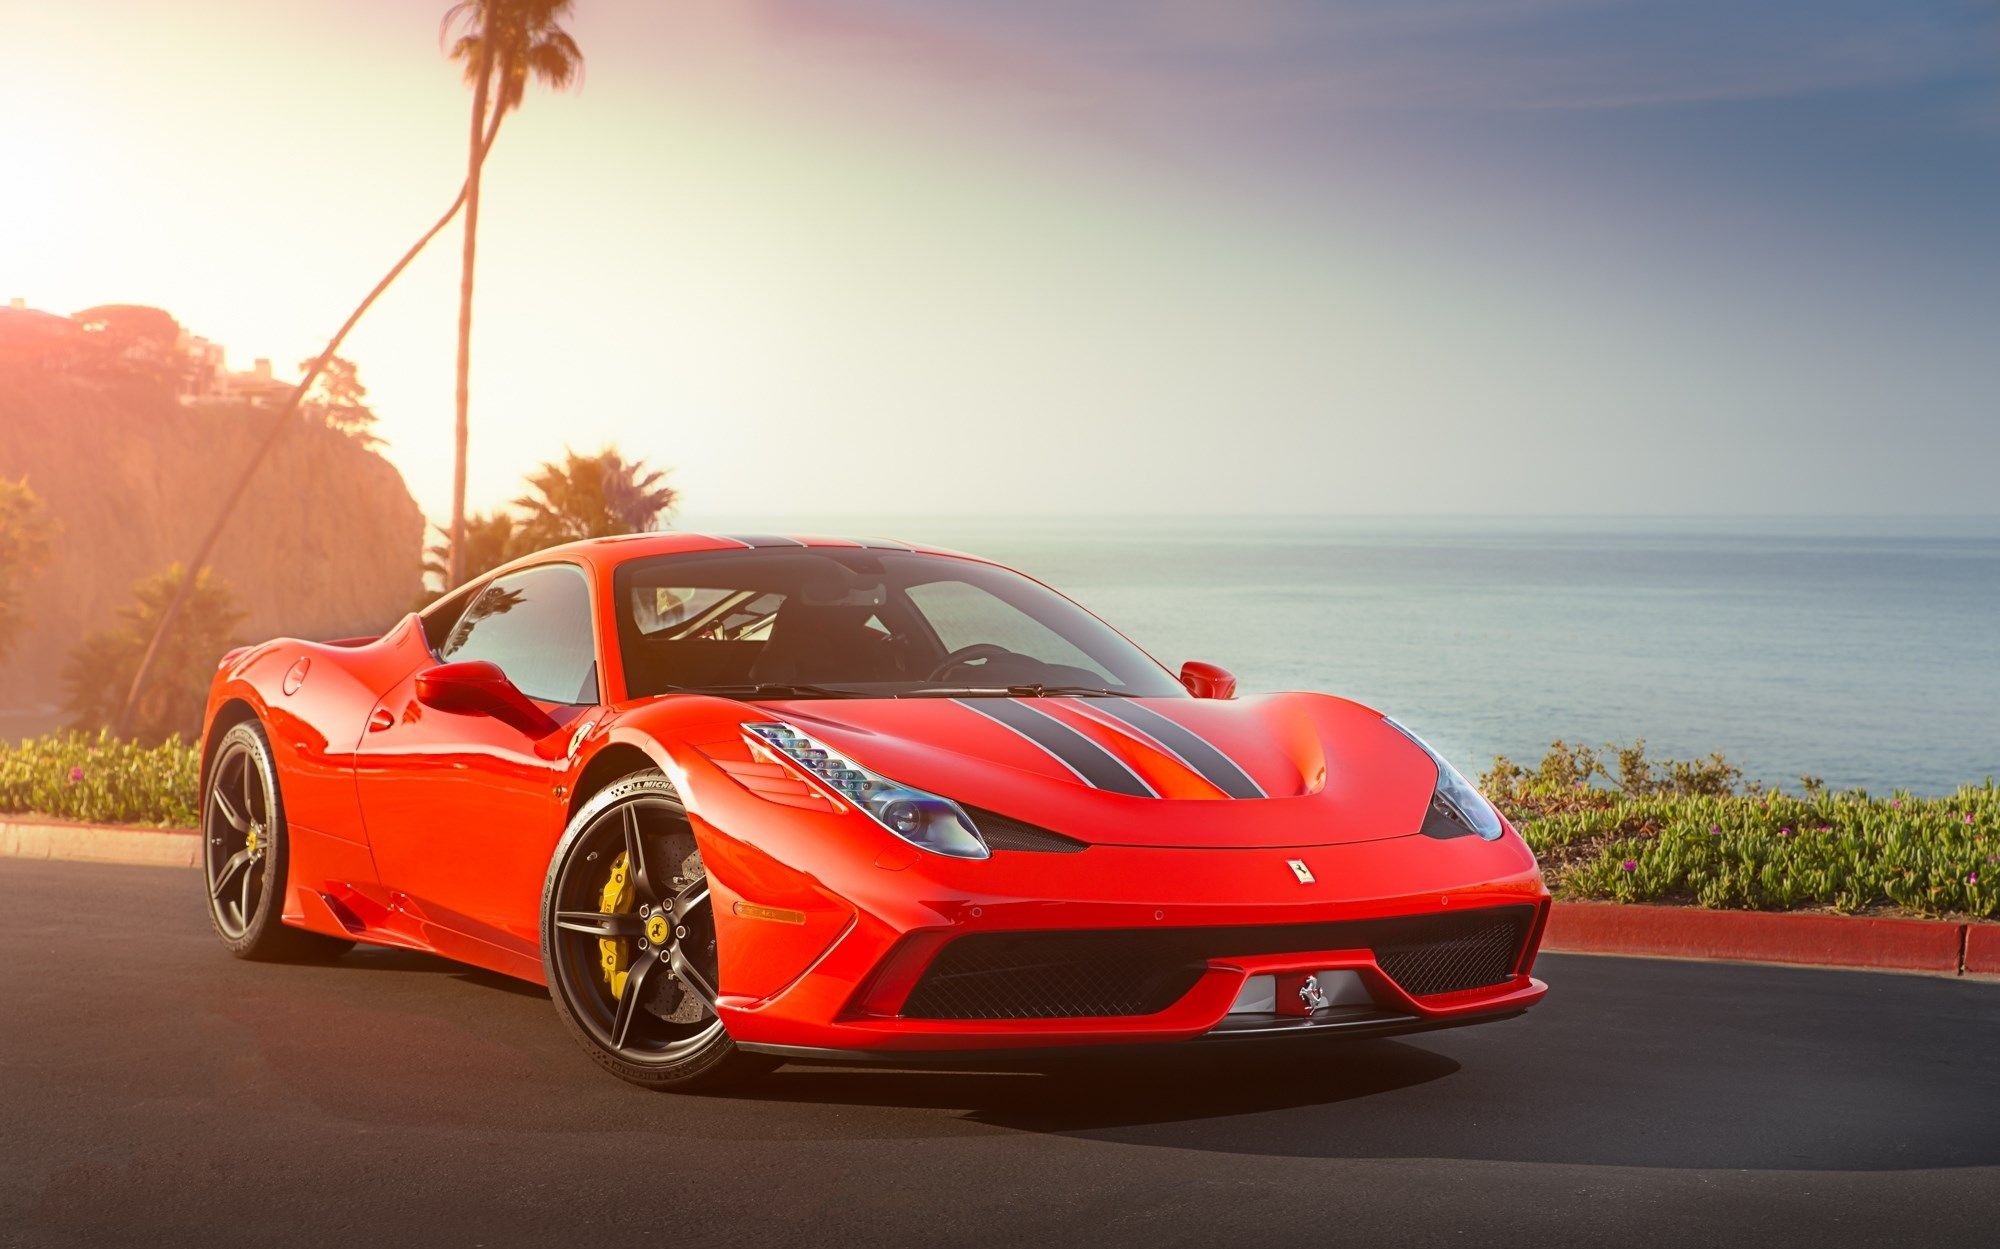 Ferrari 458 Speciale Wallpaper Hd With Images Ferrari 458